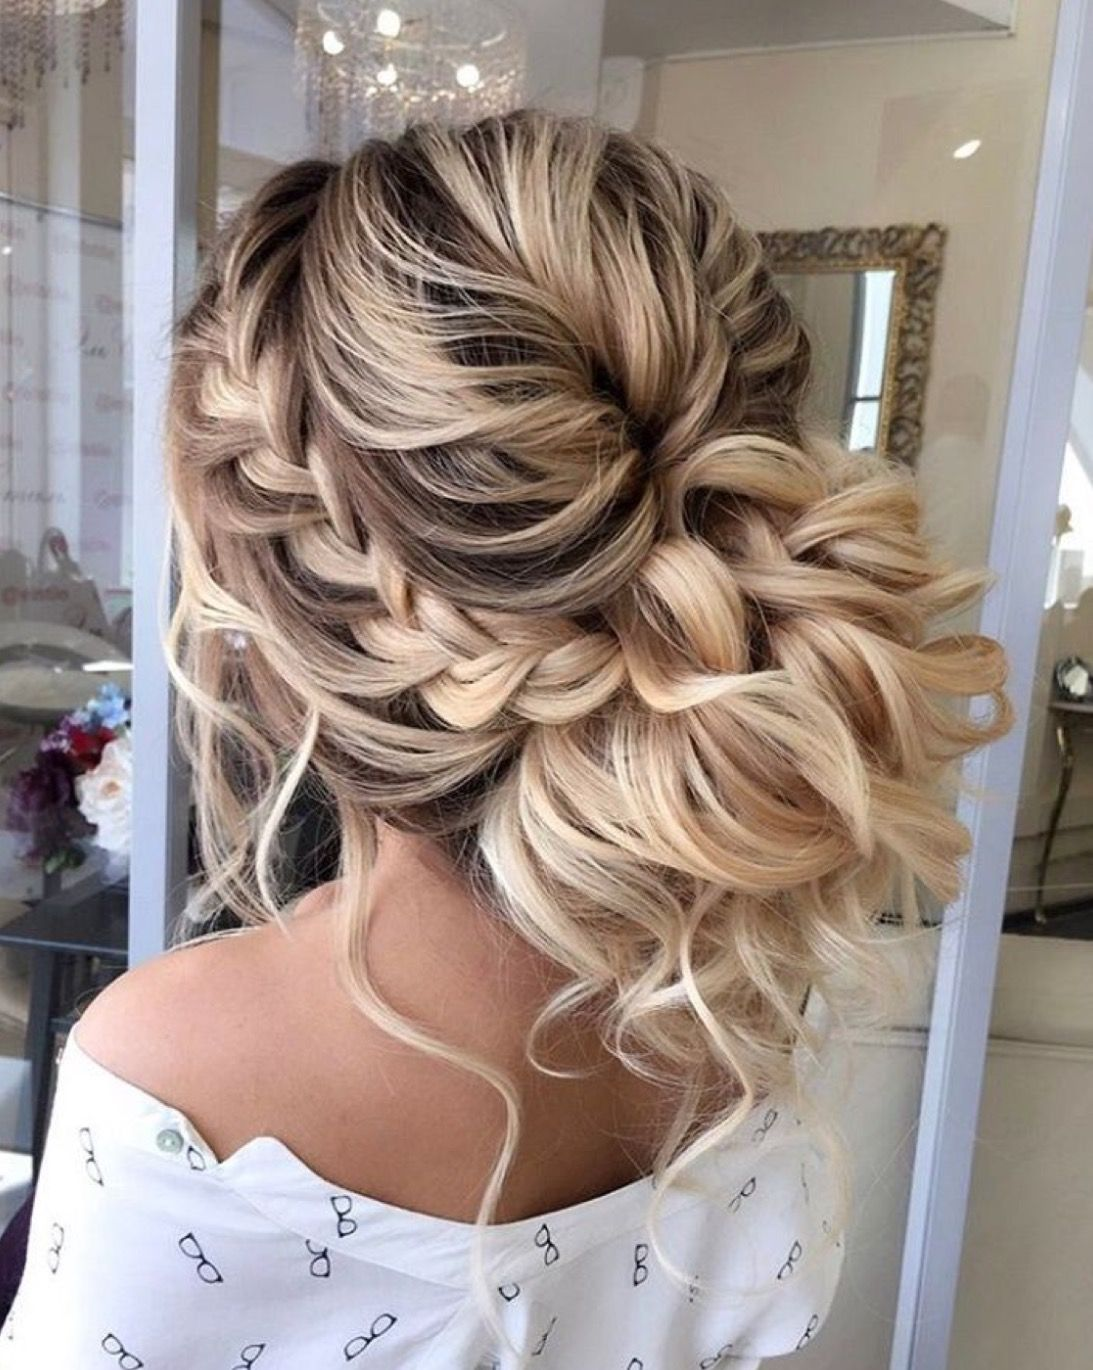 Low Messy Bun Updo With Curls And A Braid Perfect Updo For A Wedding Or Any Special Occasion Wedding Hair Inspiration Hair Styles Long Hair Styles